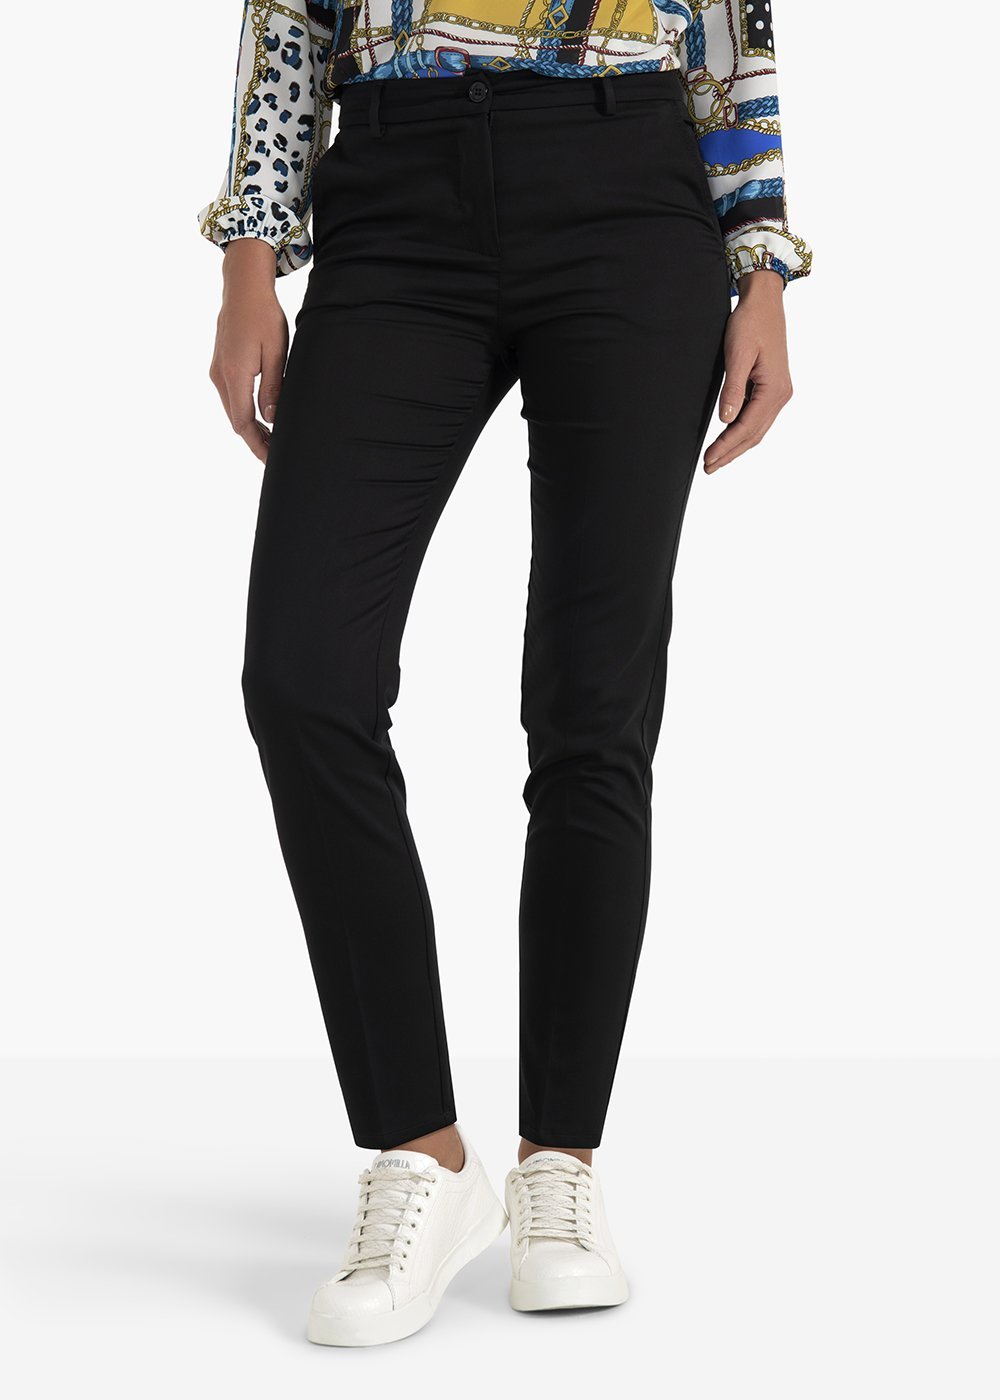 Pantaloni Clair modello Hunter in policotone - Black - Donna